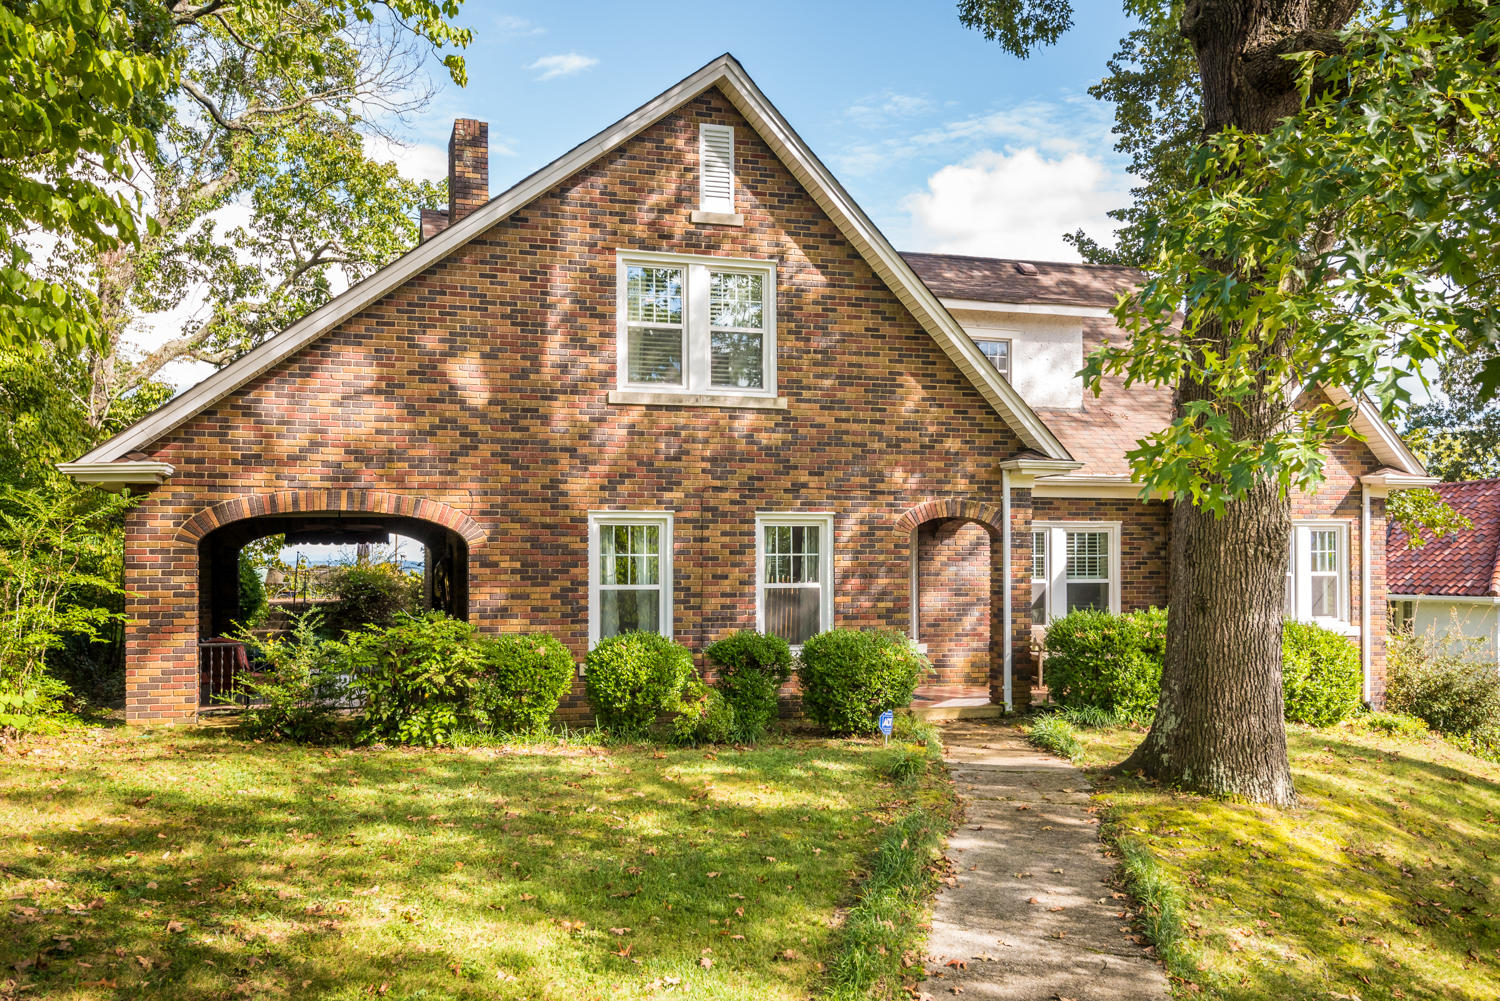 518 S Crest Rd, Chattanooga, TN 37404